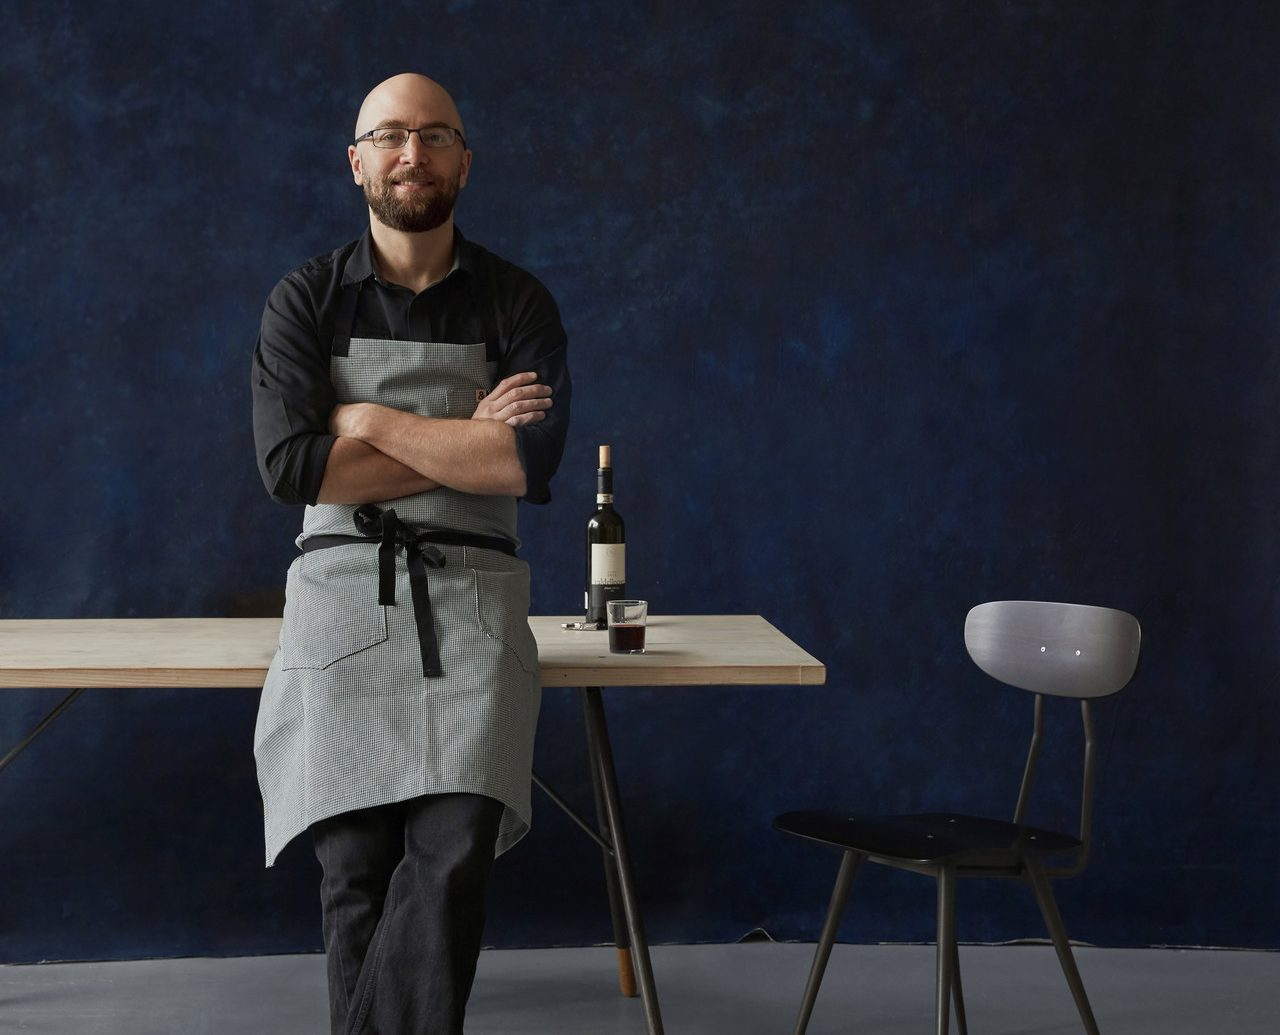 chef leaning against a table